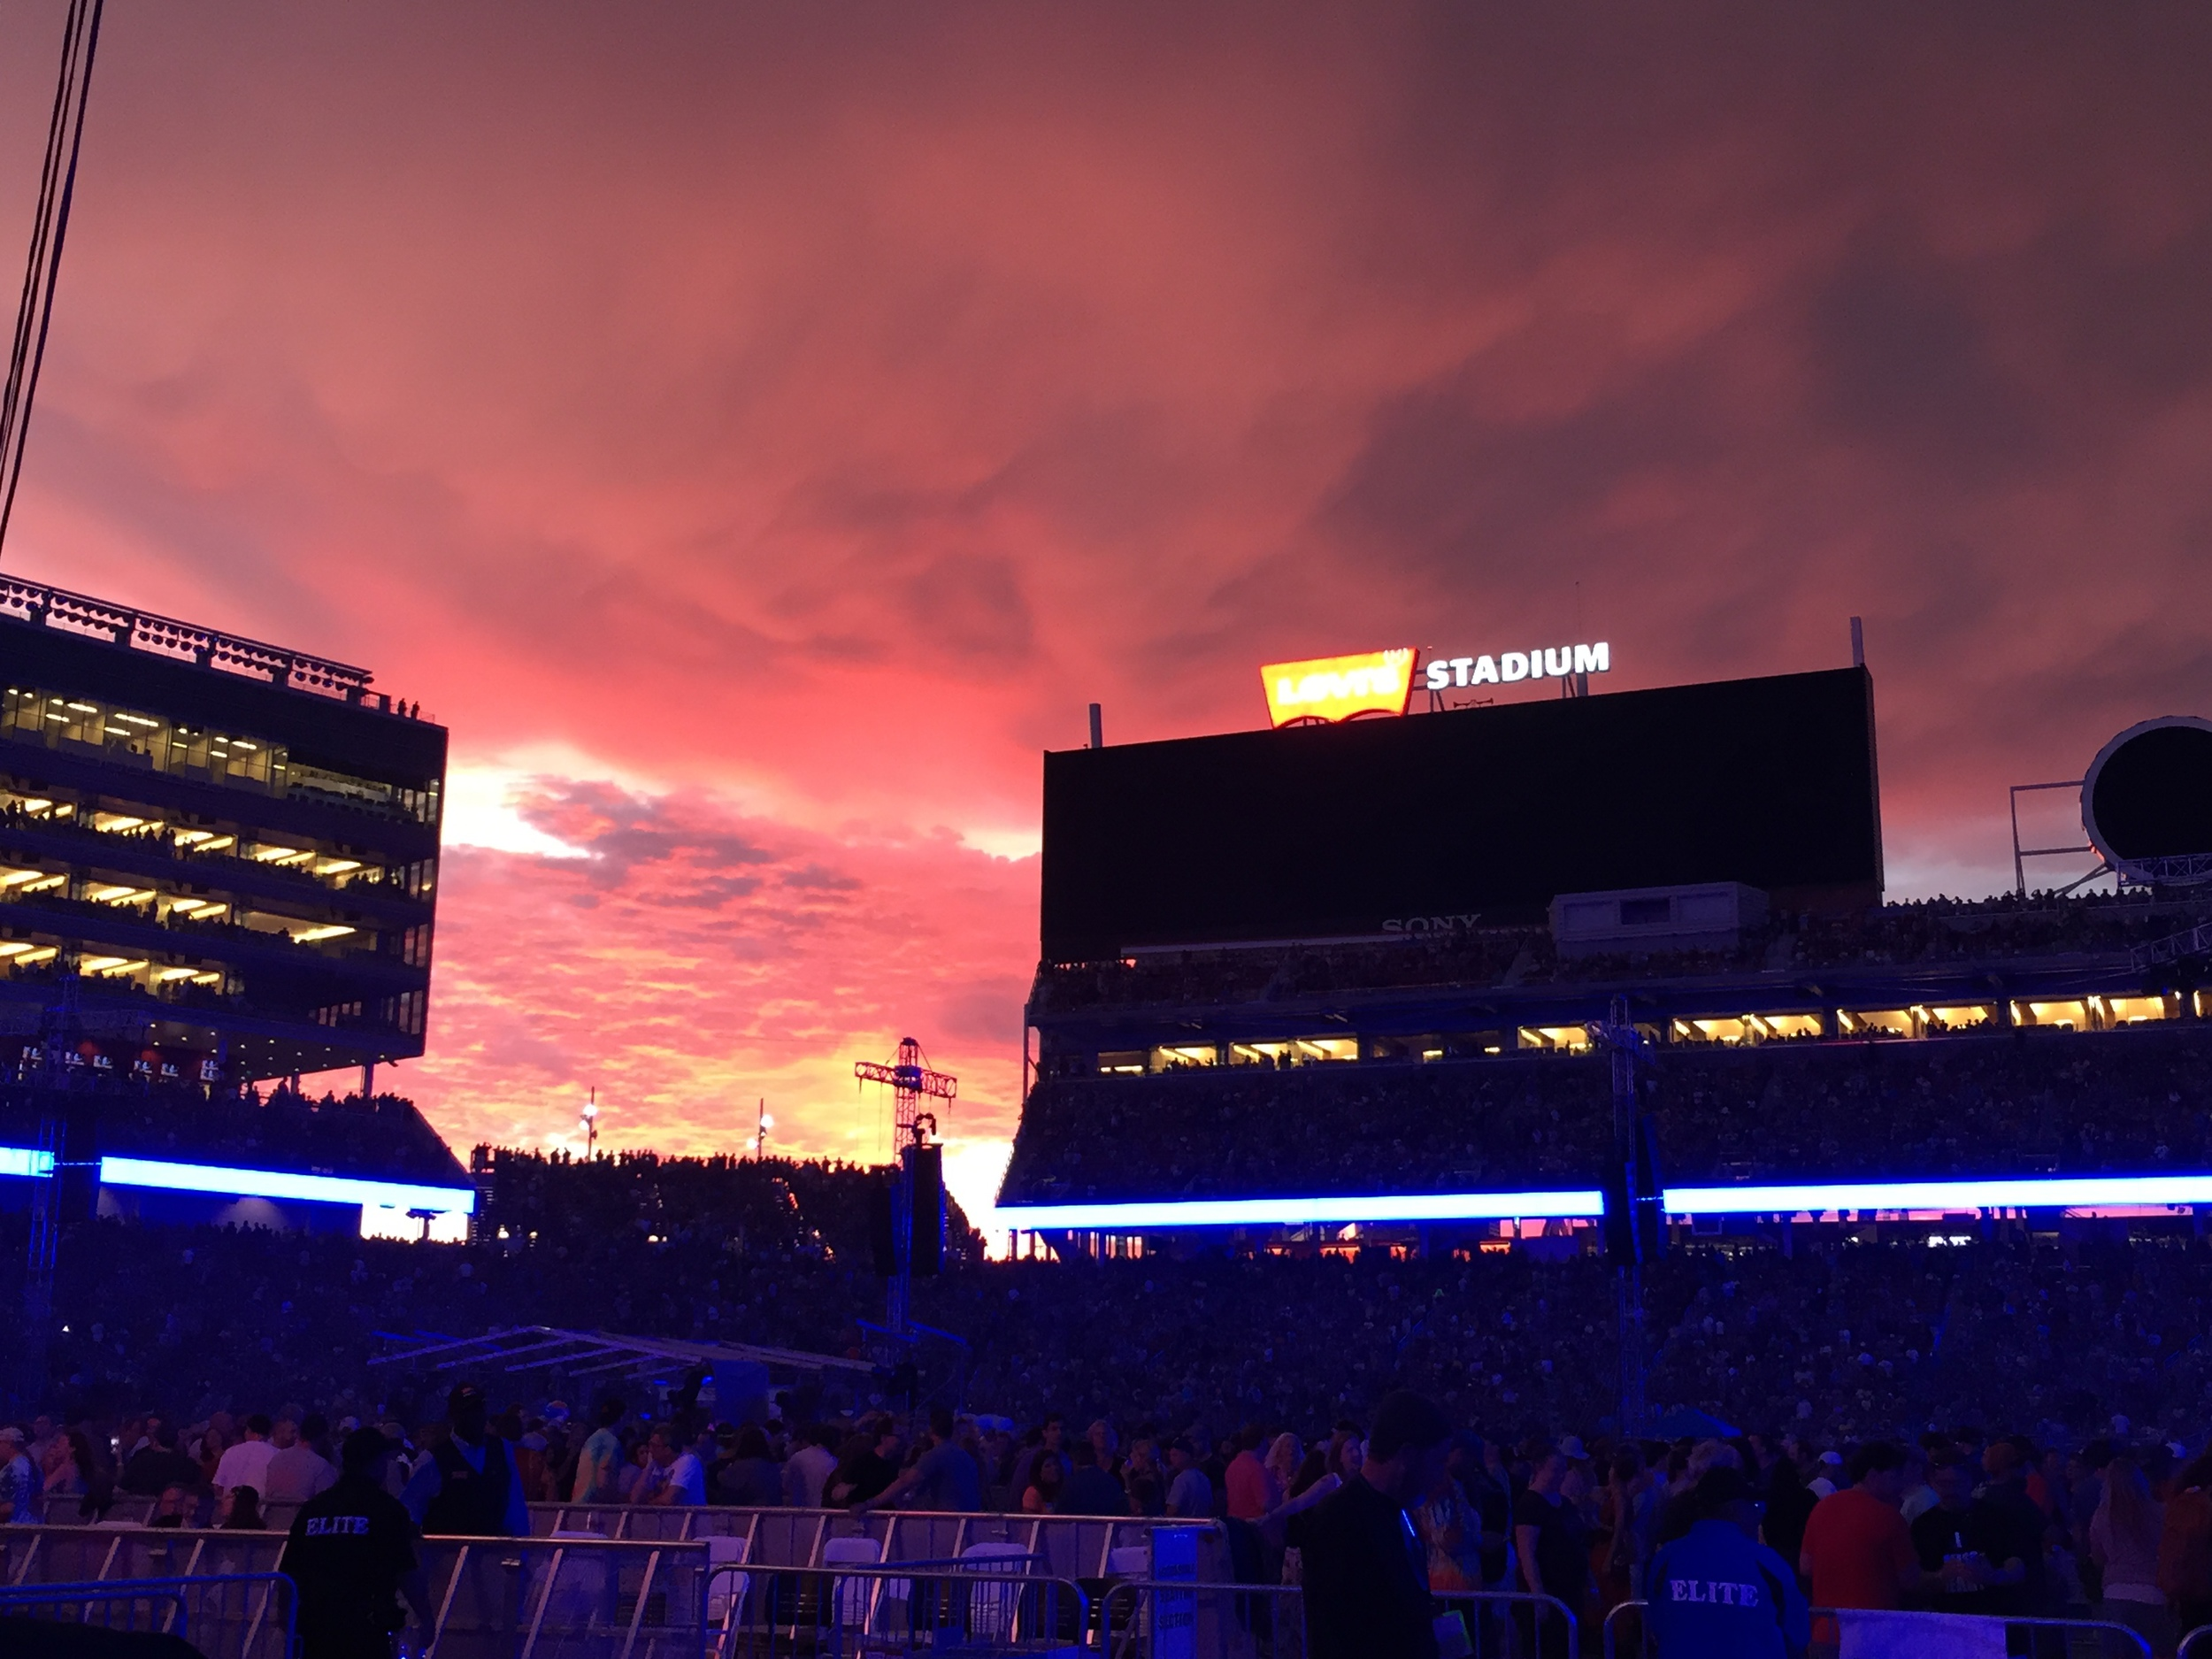 One of the beautiful sunsets at Levi's.